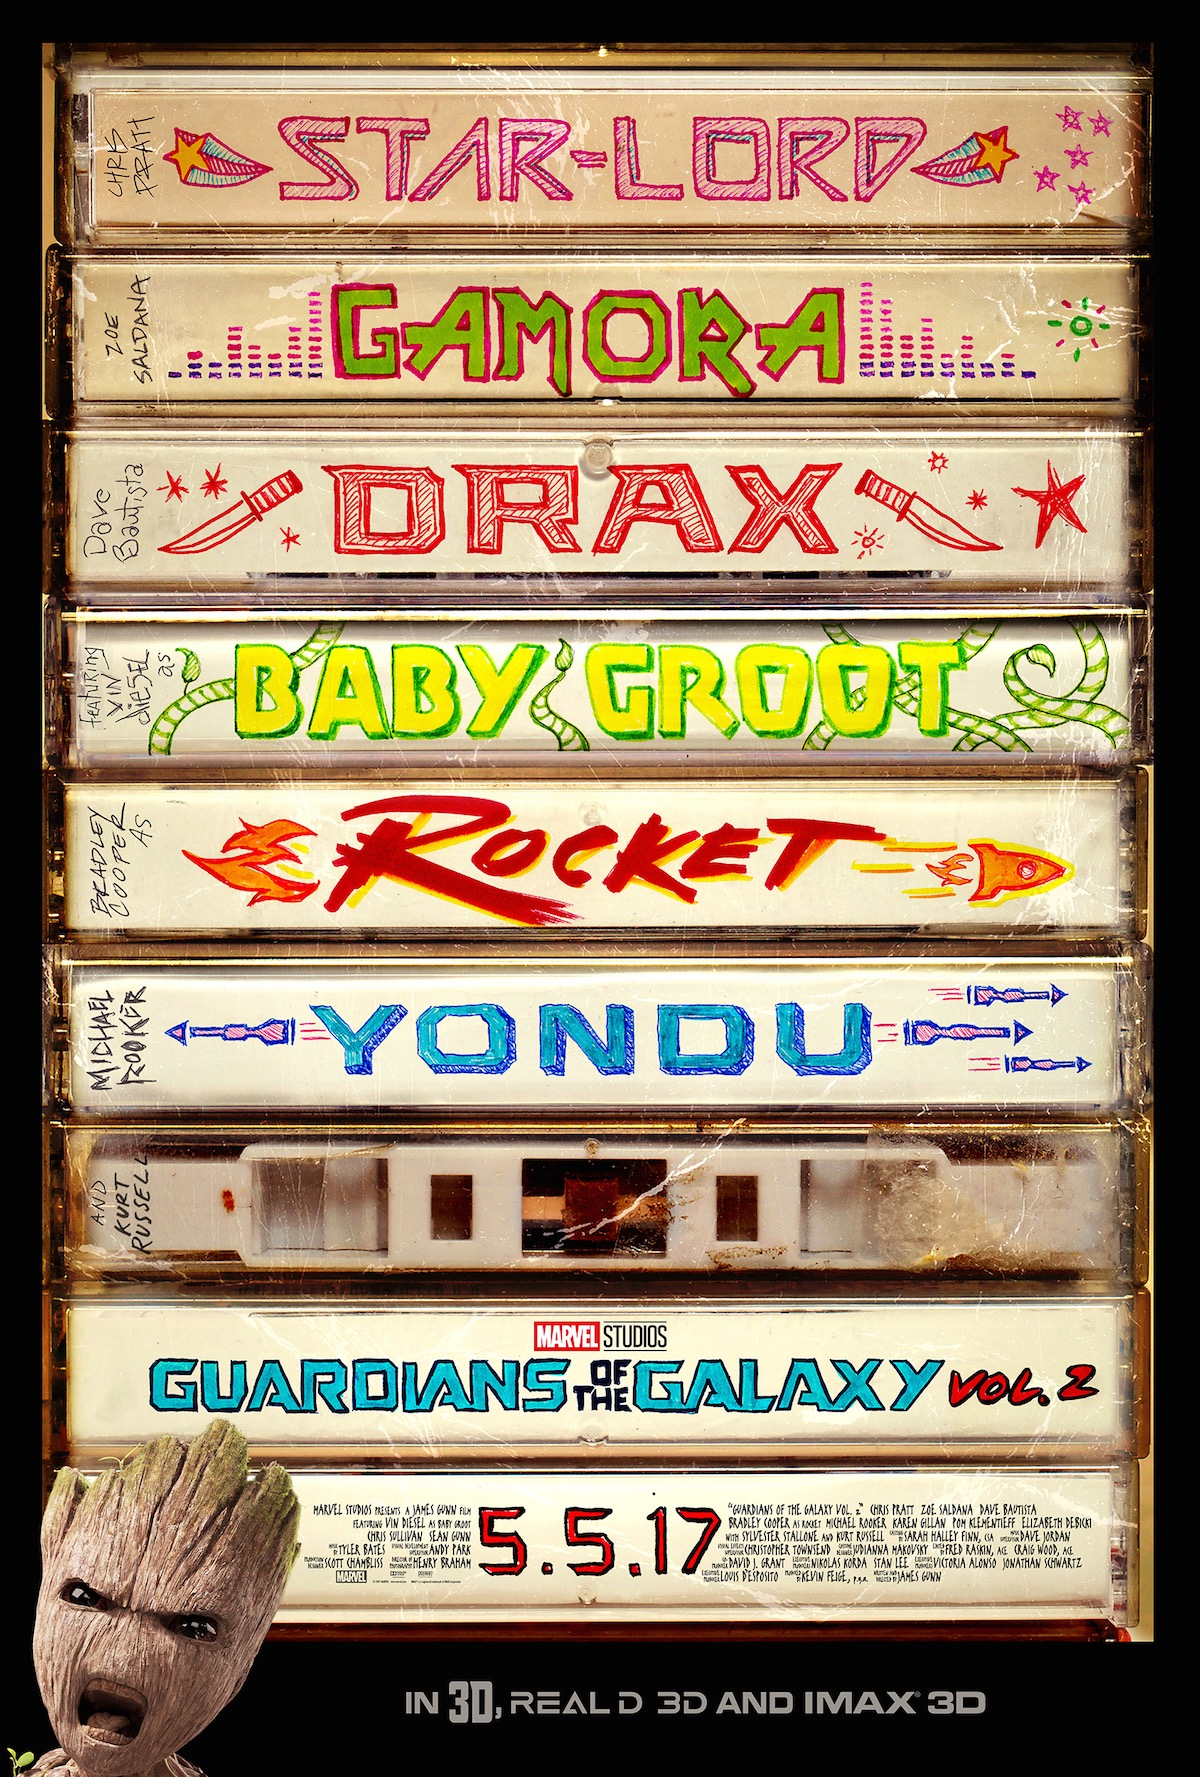 Guardiand of the Galaxy Vol 2 Spot & Plakat